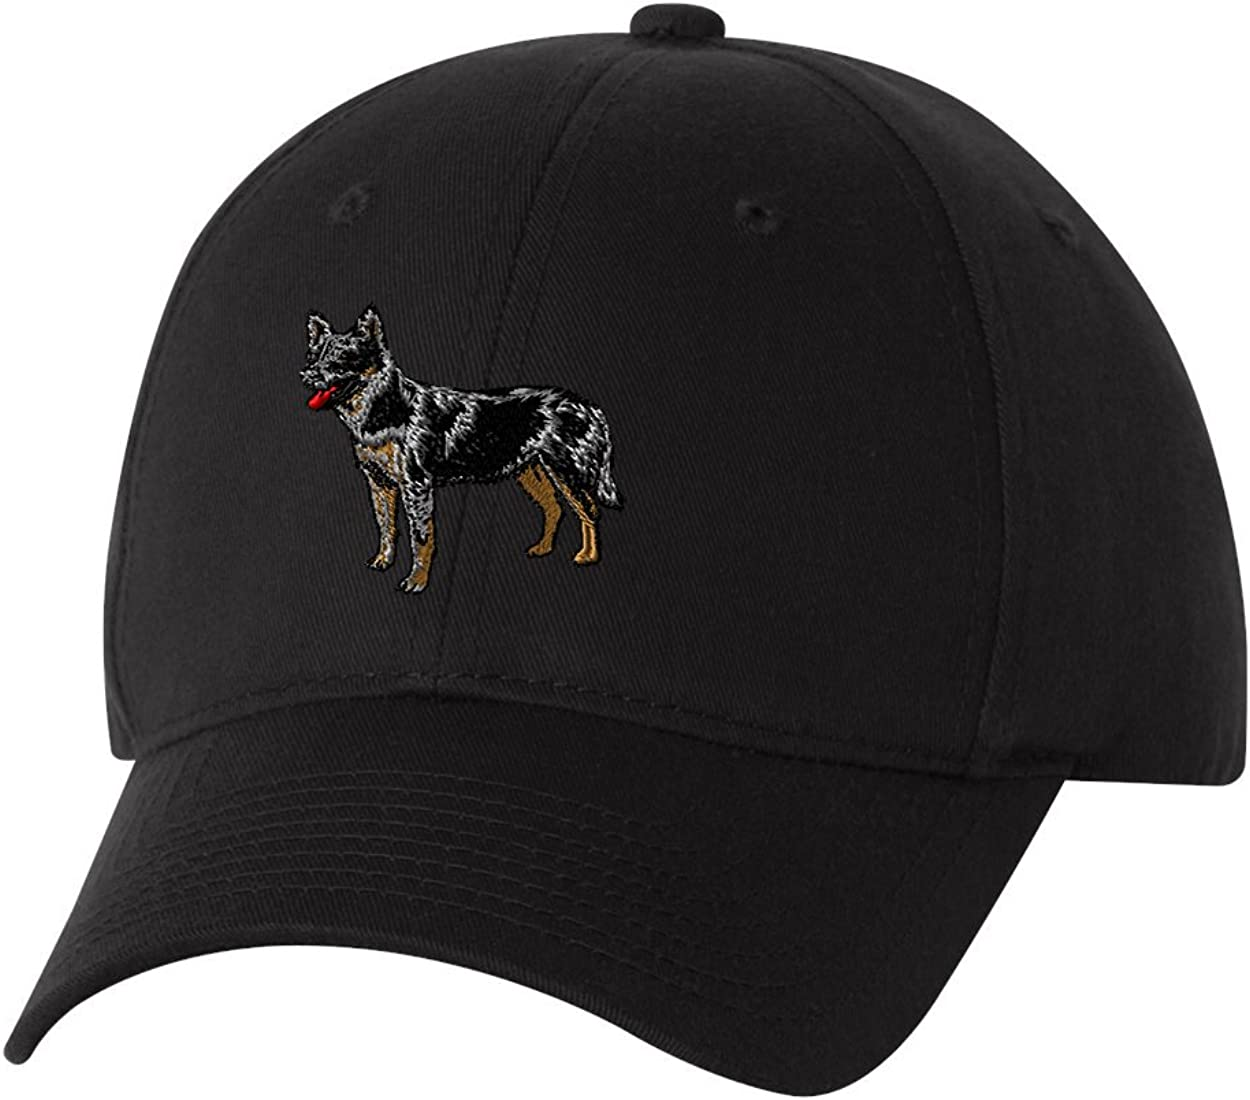 Australian Cattle Dog Embroidery Embroidered Beanie Skully Hat Cap